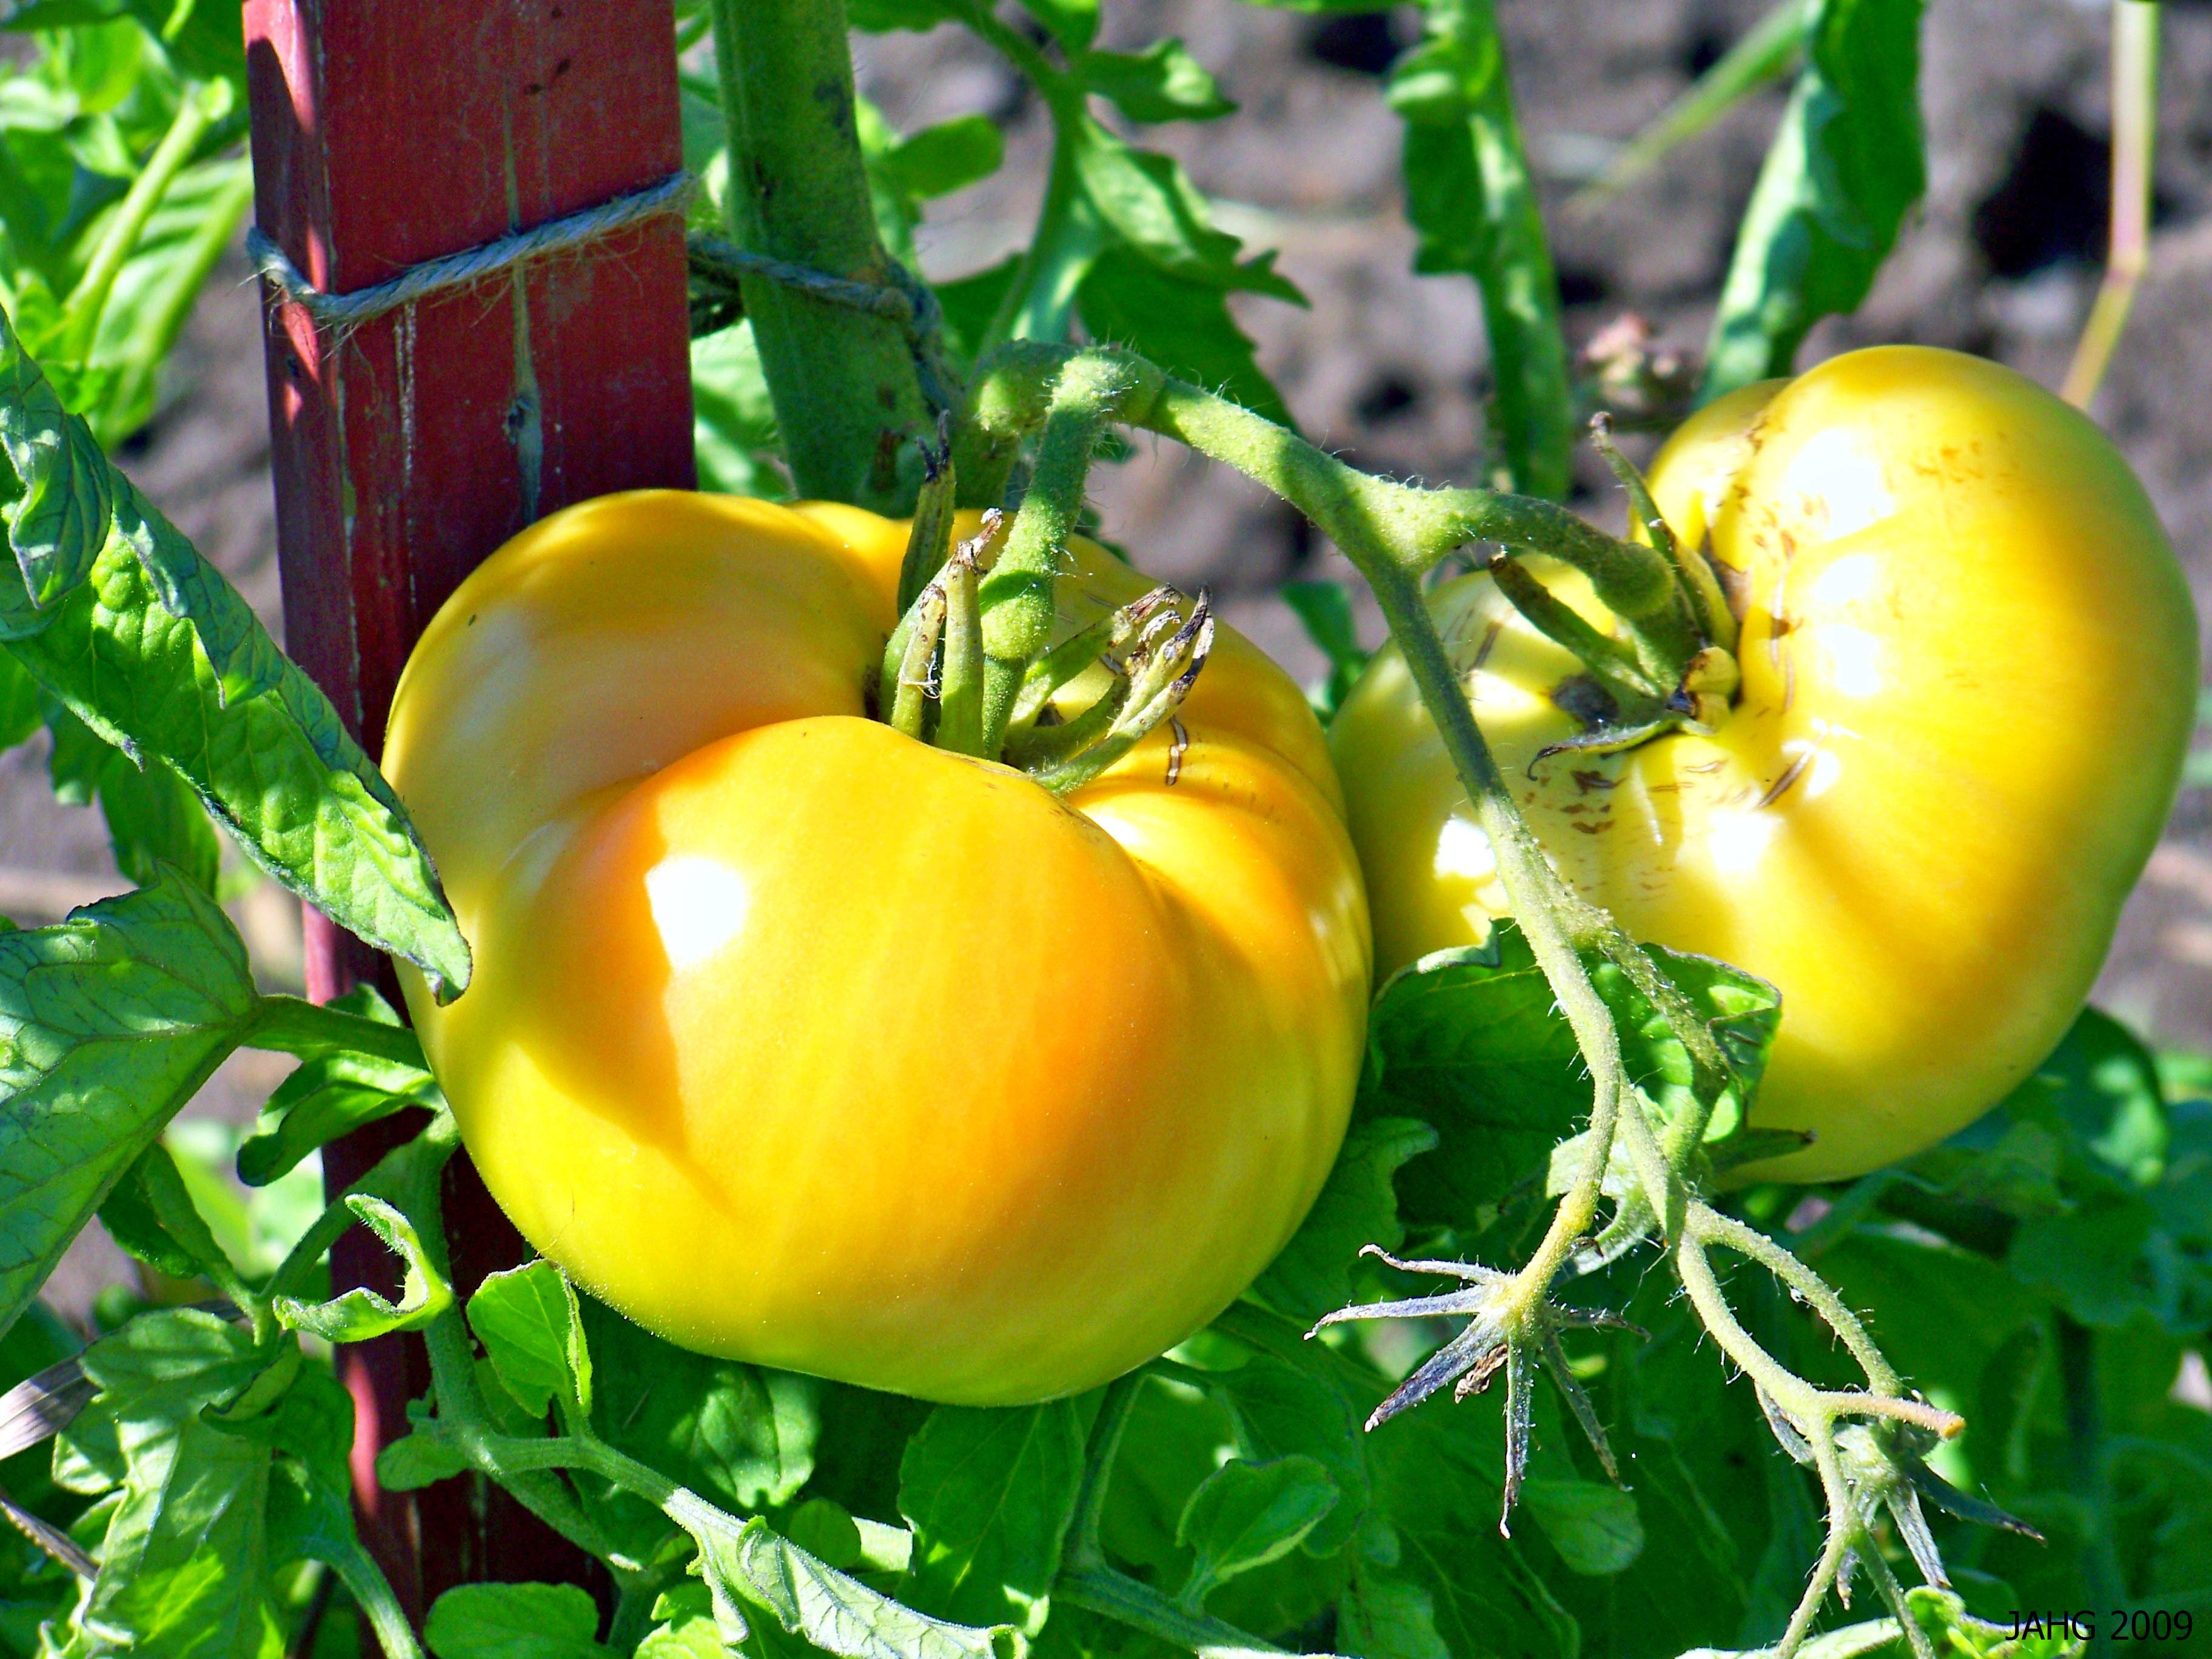 The big 'Beefsteak' Tomatoes are a favorite for Hambugers and sandwiches everywhere!